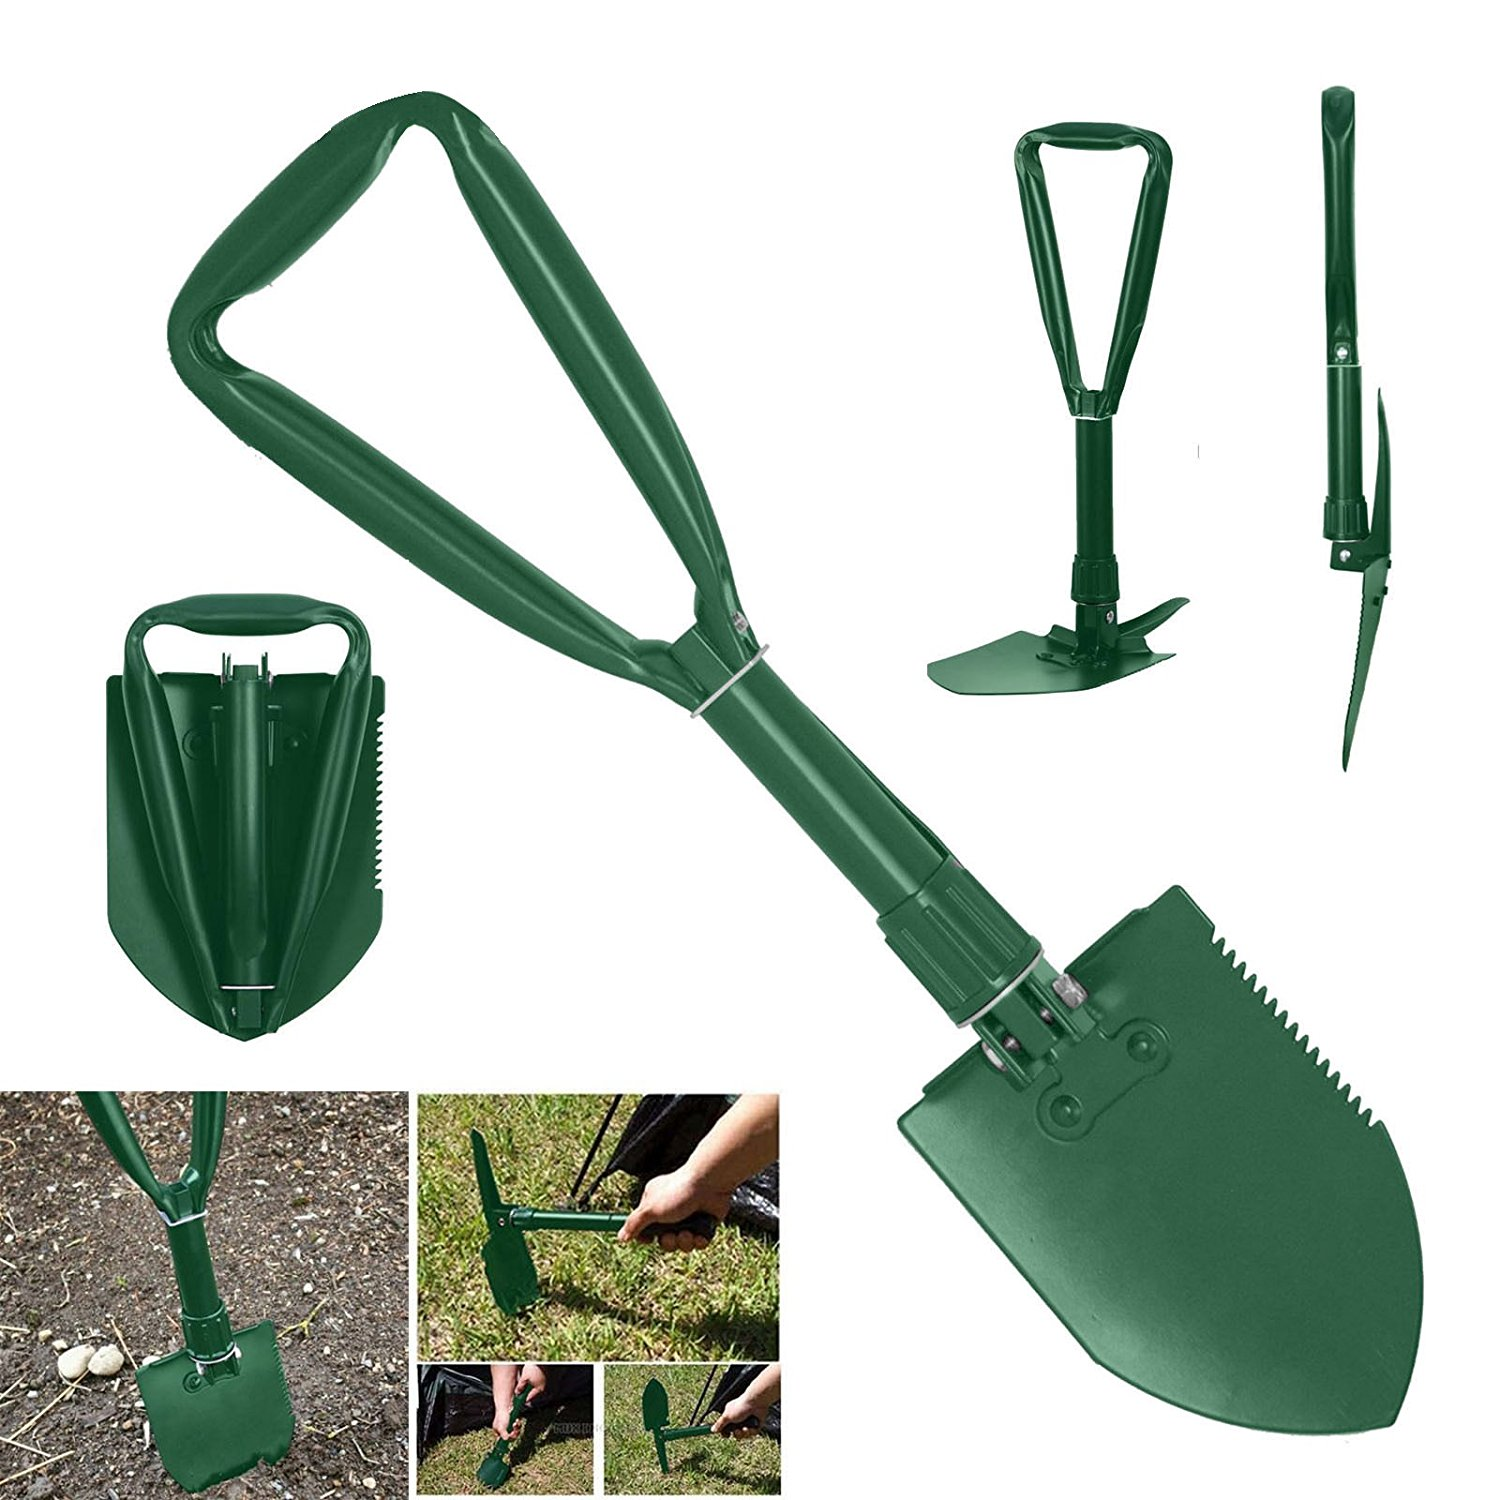 Folding Shovel Multi-Tool Knife Case Camping Hunting Survival Compact Tool